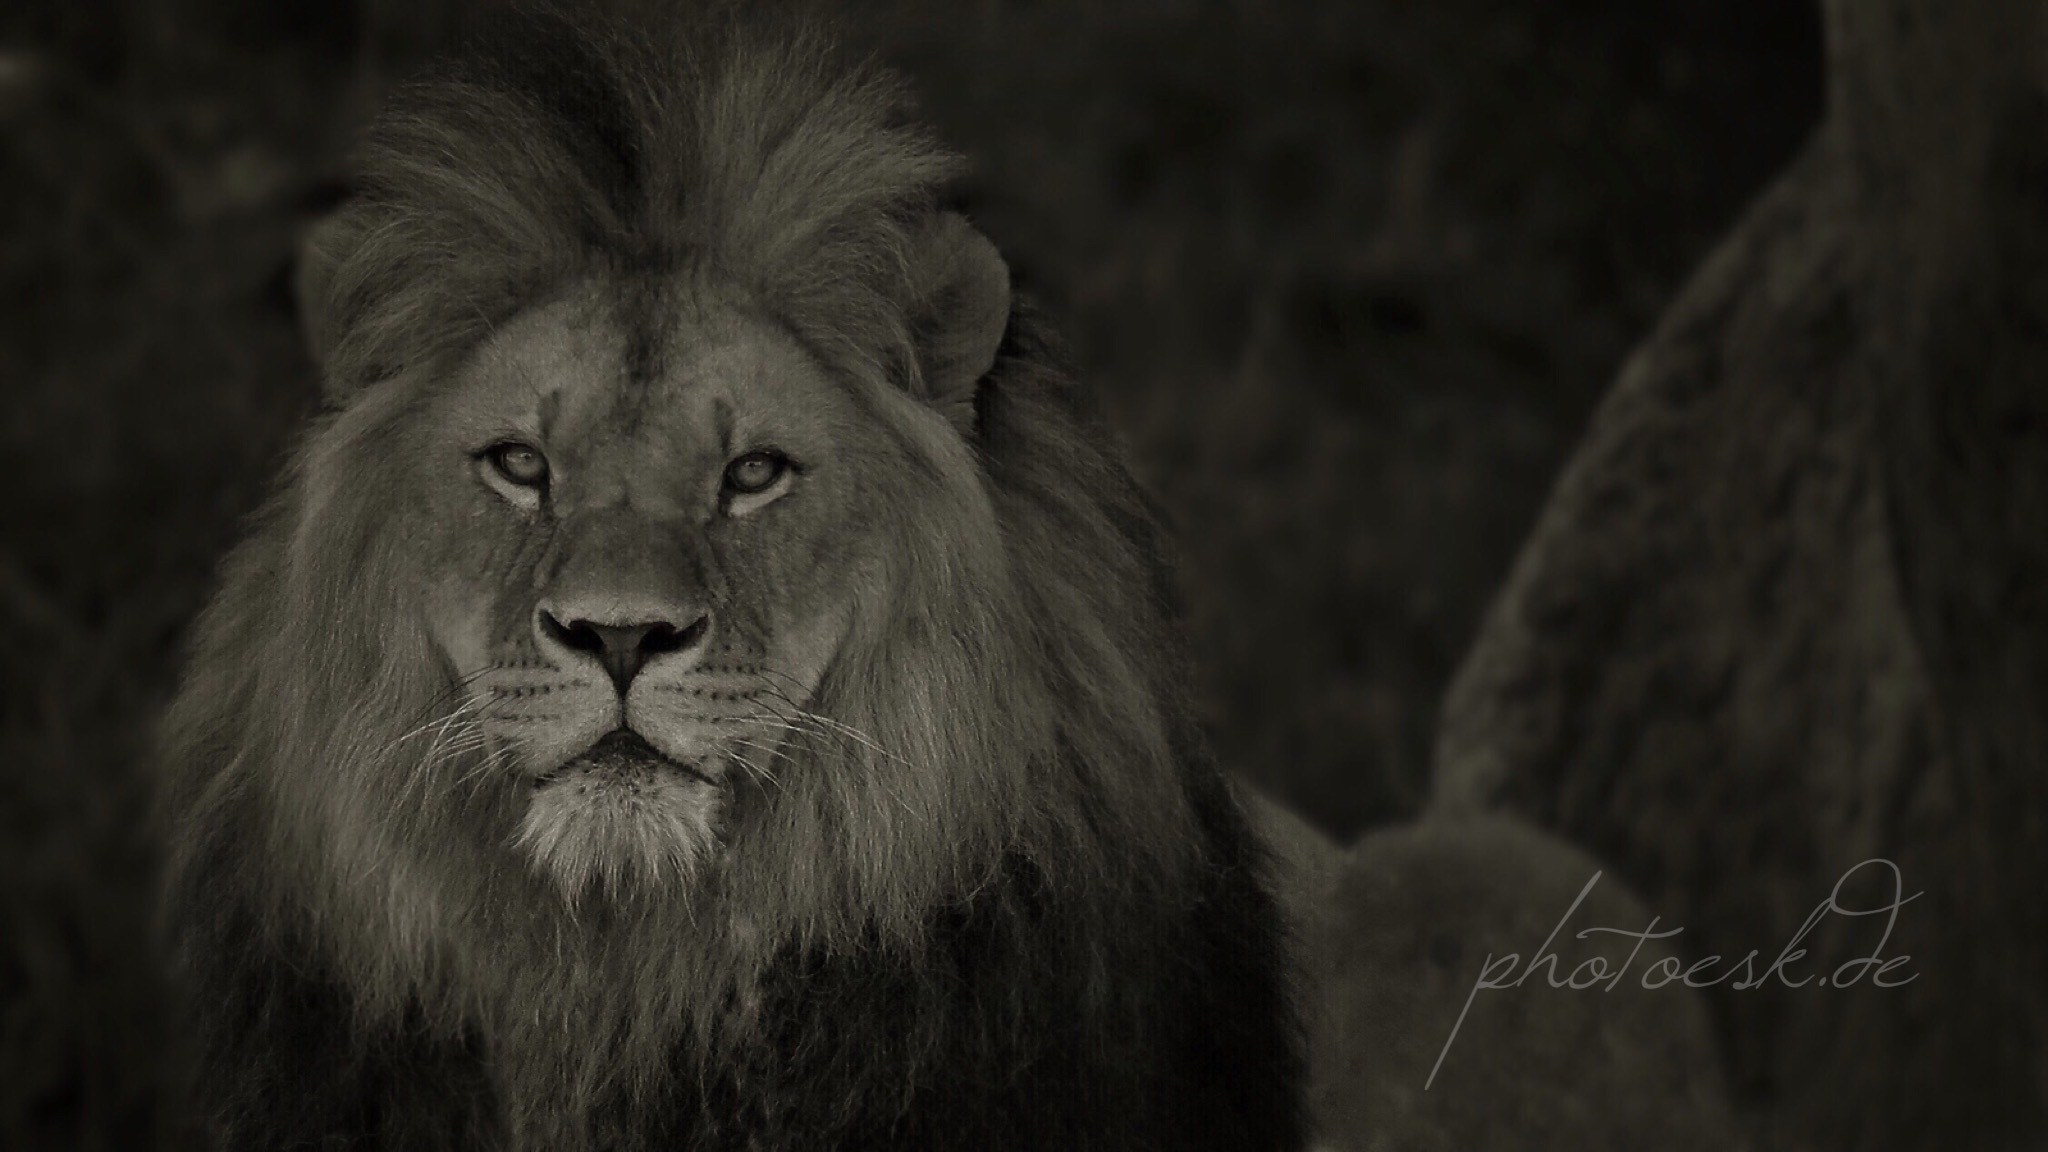 royal expression by photoesk - just Art